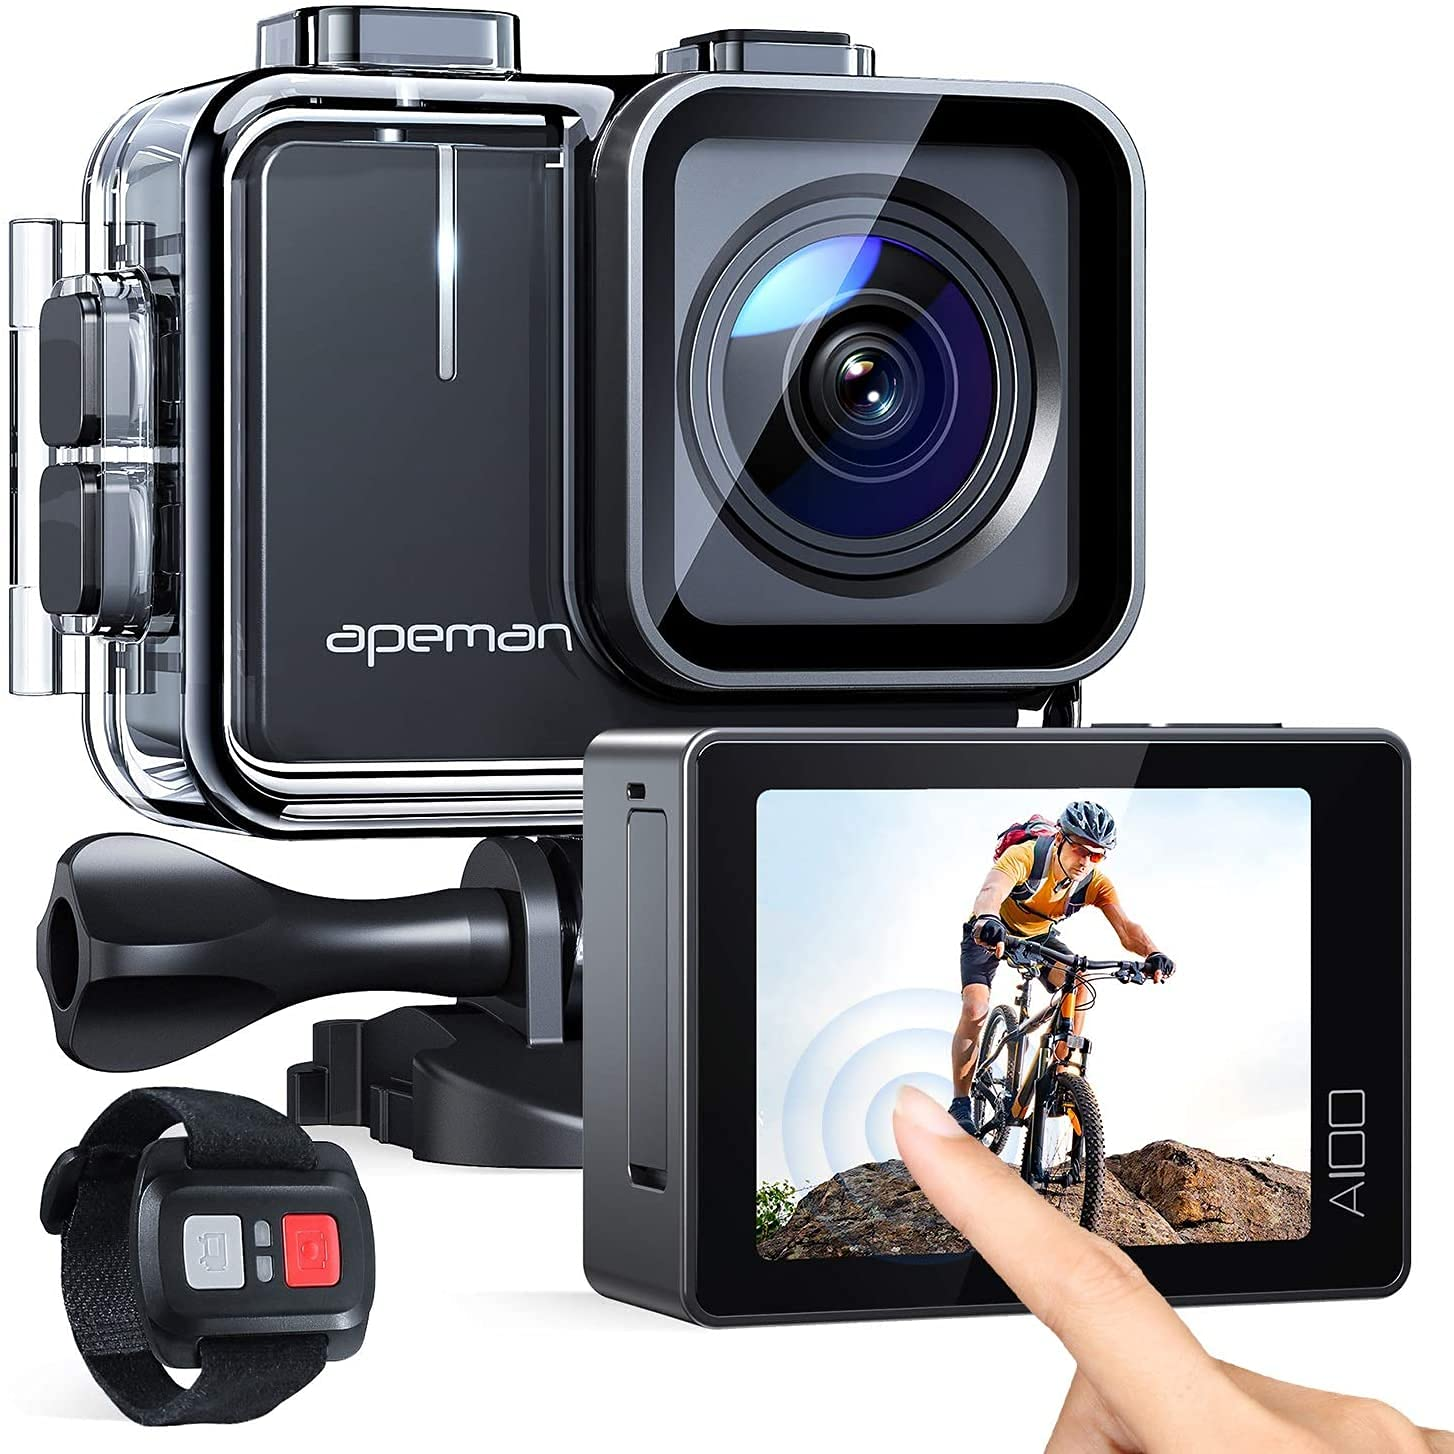 APEMAN A100 Action Camera 4K 50fps Touchscreen Ultra HD 20MP WiFi Sports Underwater Waterproof 40M Camcorder cam with EIS Remote Control Dual 1350 mAh Batteries and Mounting Accessories Kit